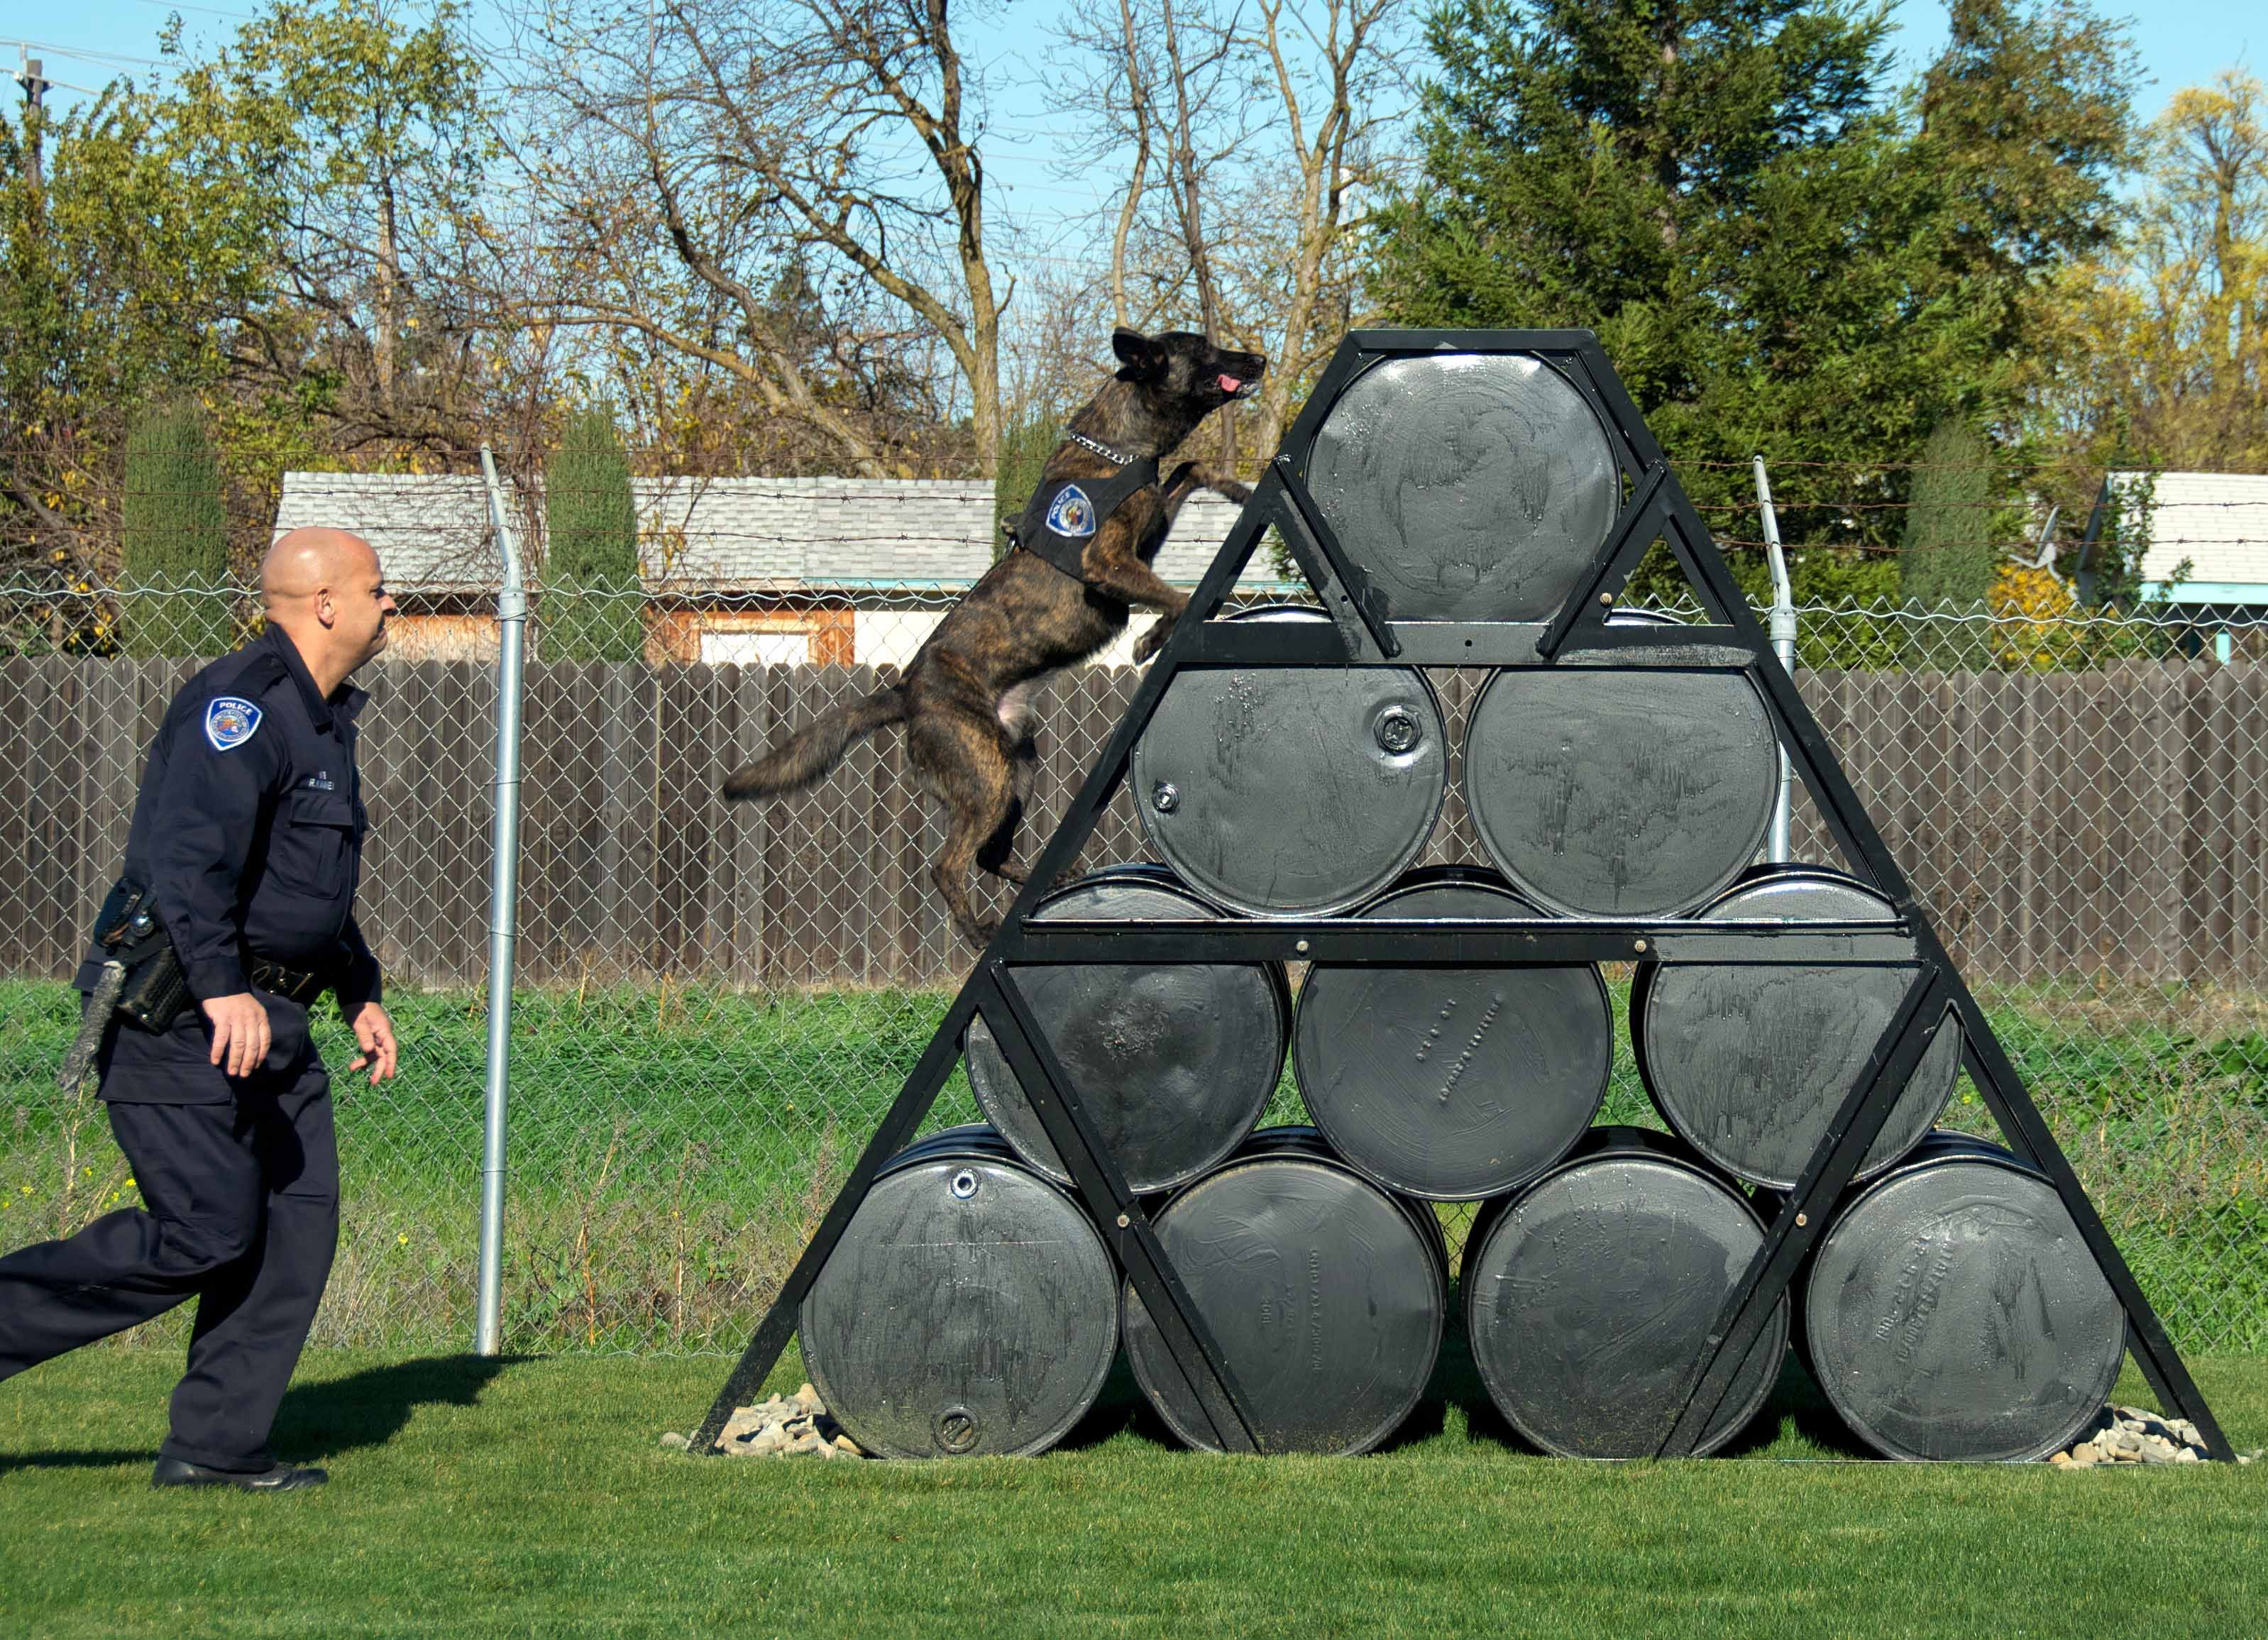 K9 Handler Academy K9 Exercises At The New Training Field In